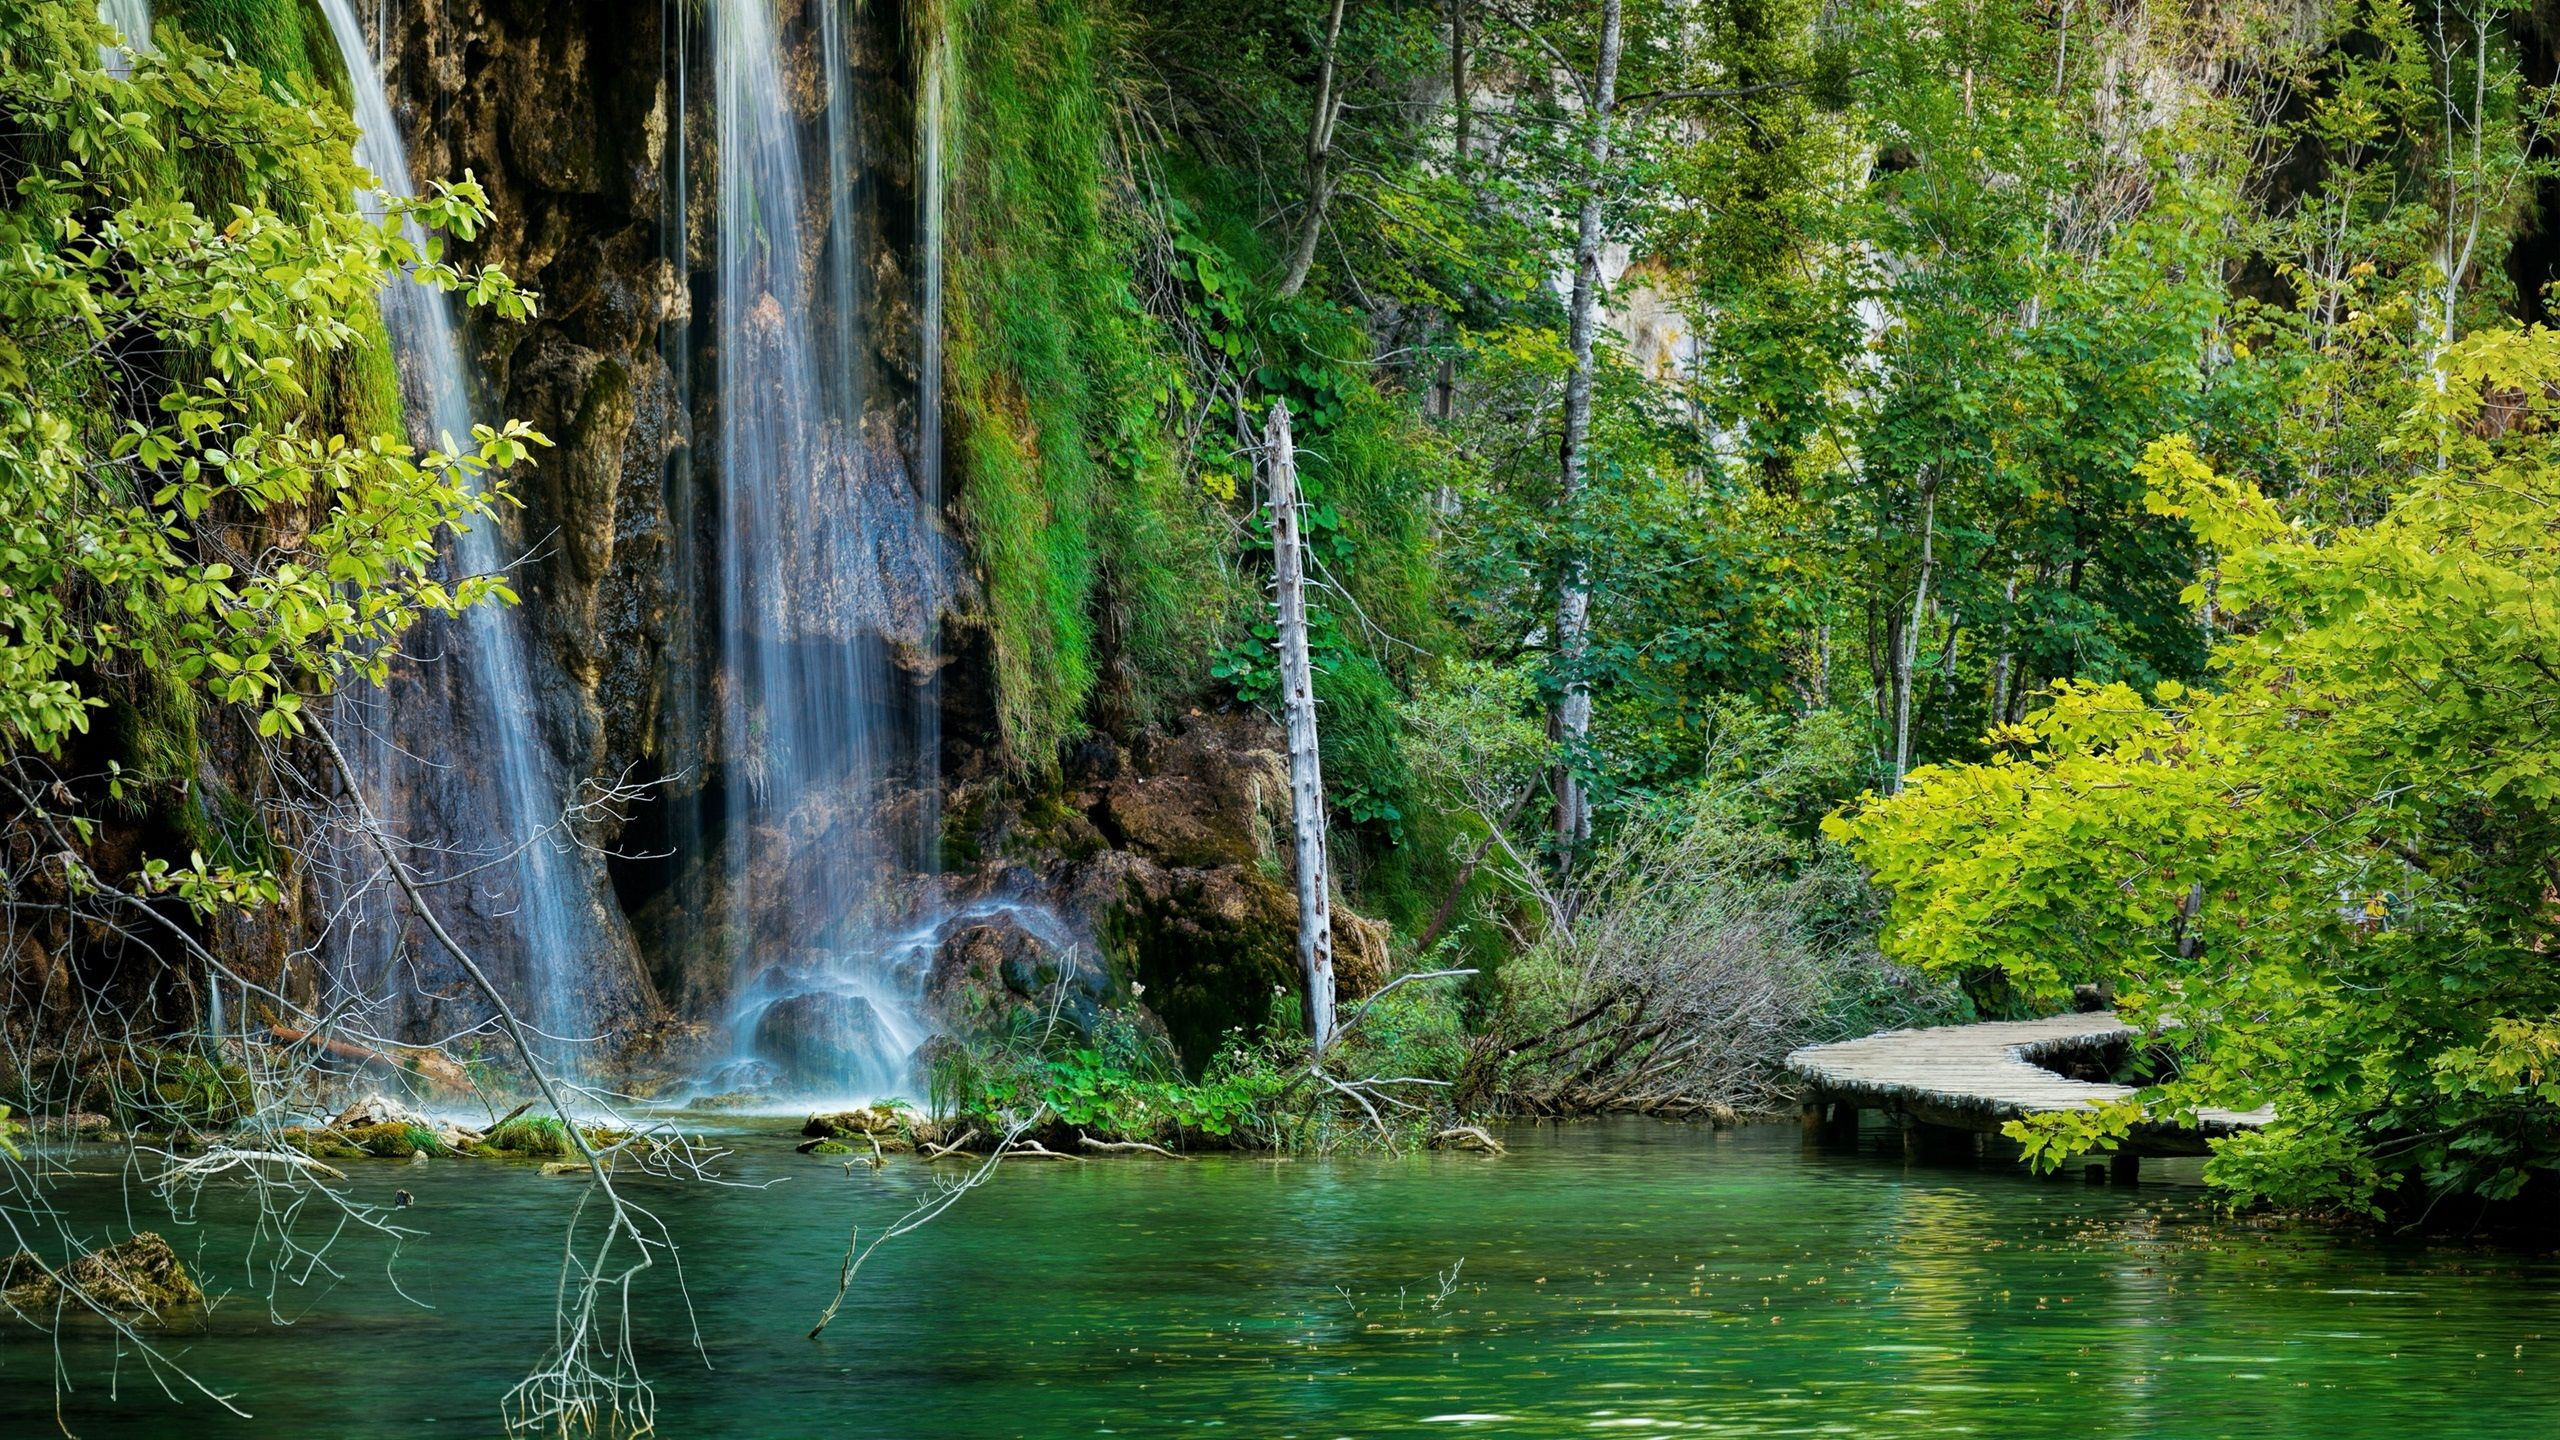 Download Wallpapers 2560x1440 Croatia, Plitvice Lakes National Park